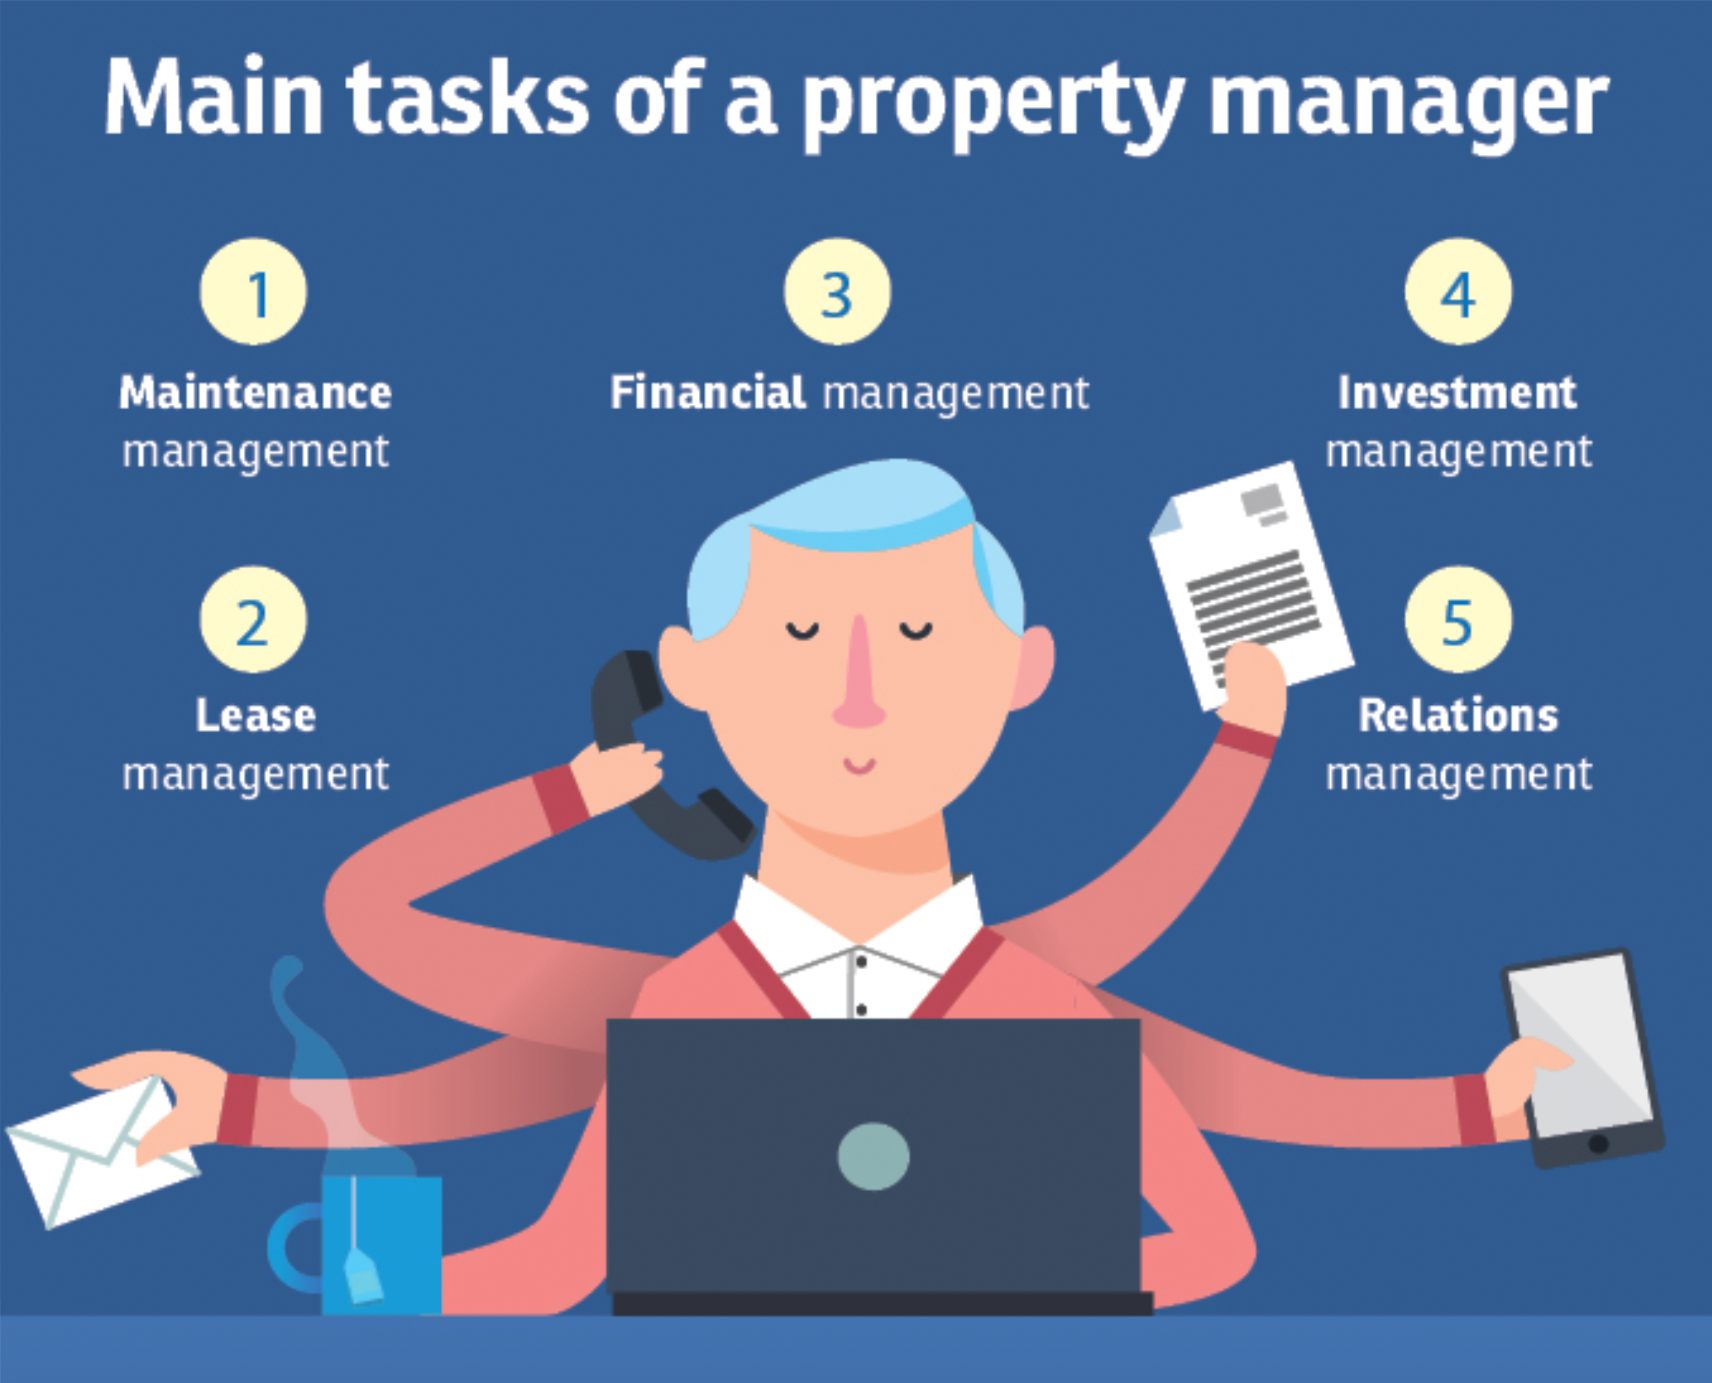 Main Tasks that a Property Manager Undertakes – Maintenance Management, Lease Management, Financial Management, Investment Management & Relations Management